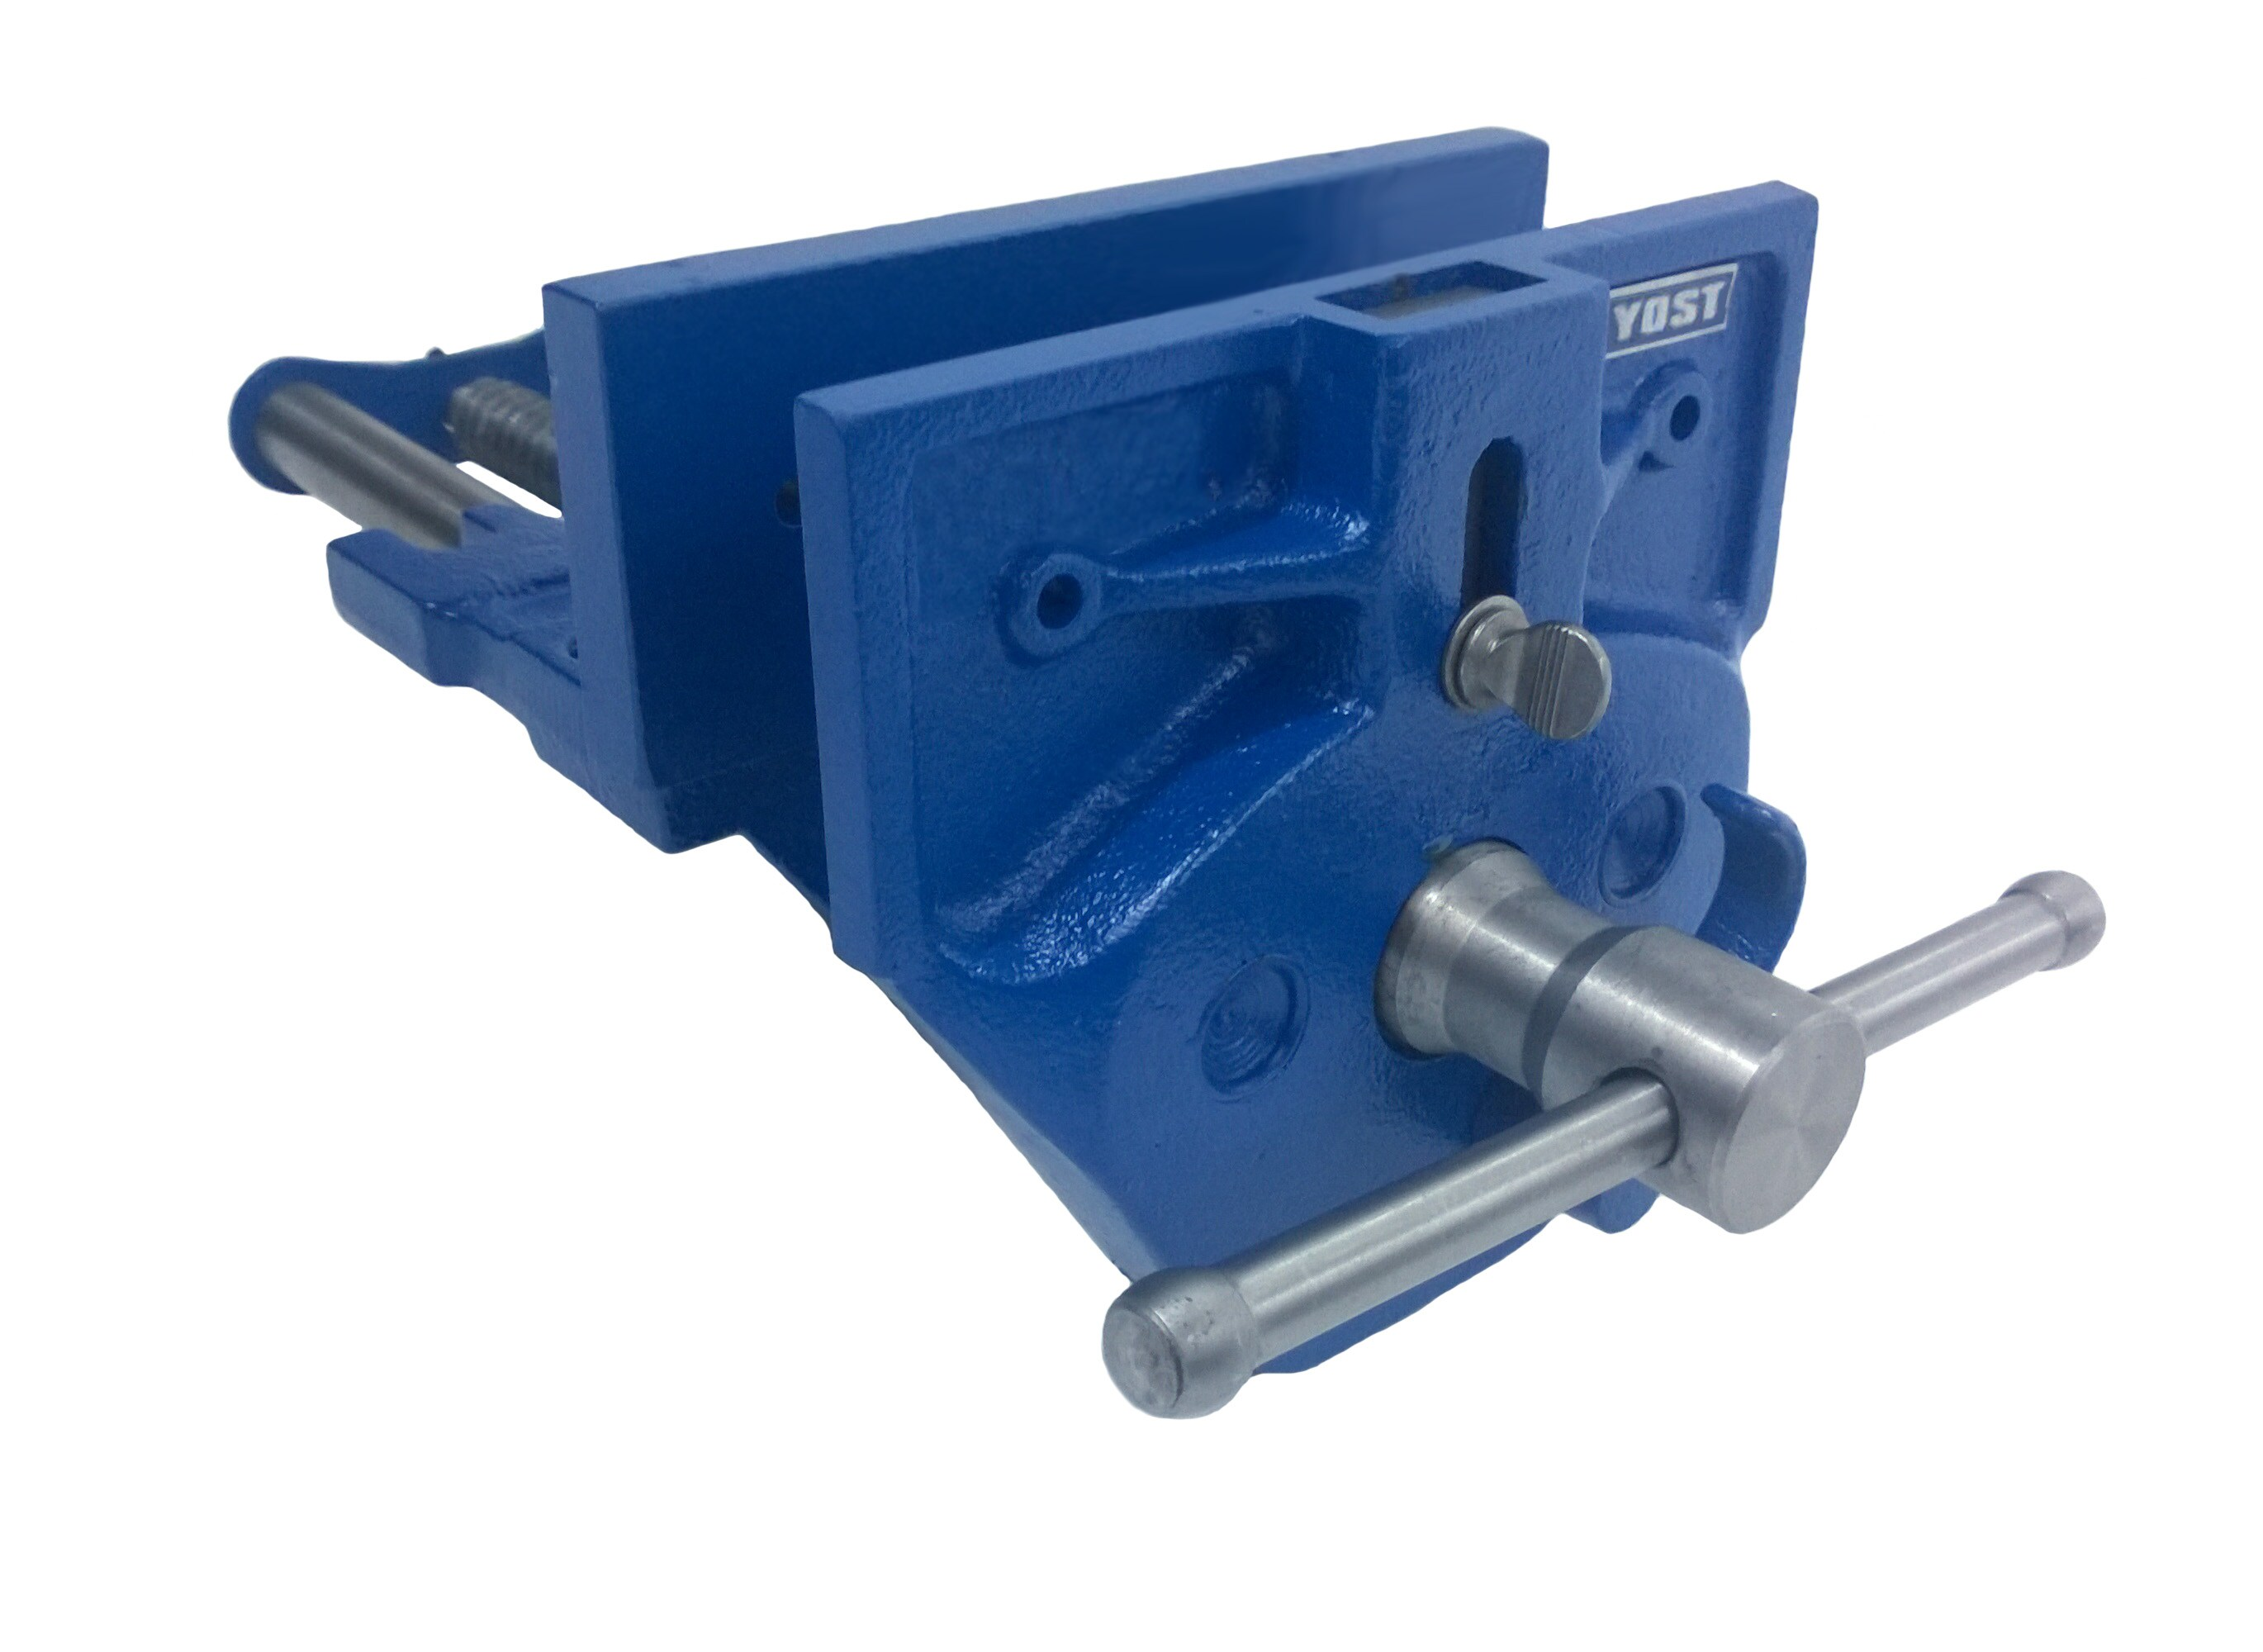 Yost 7-in Cast Iron Vise